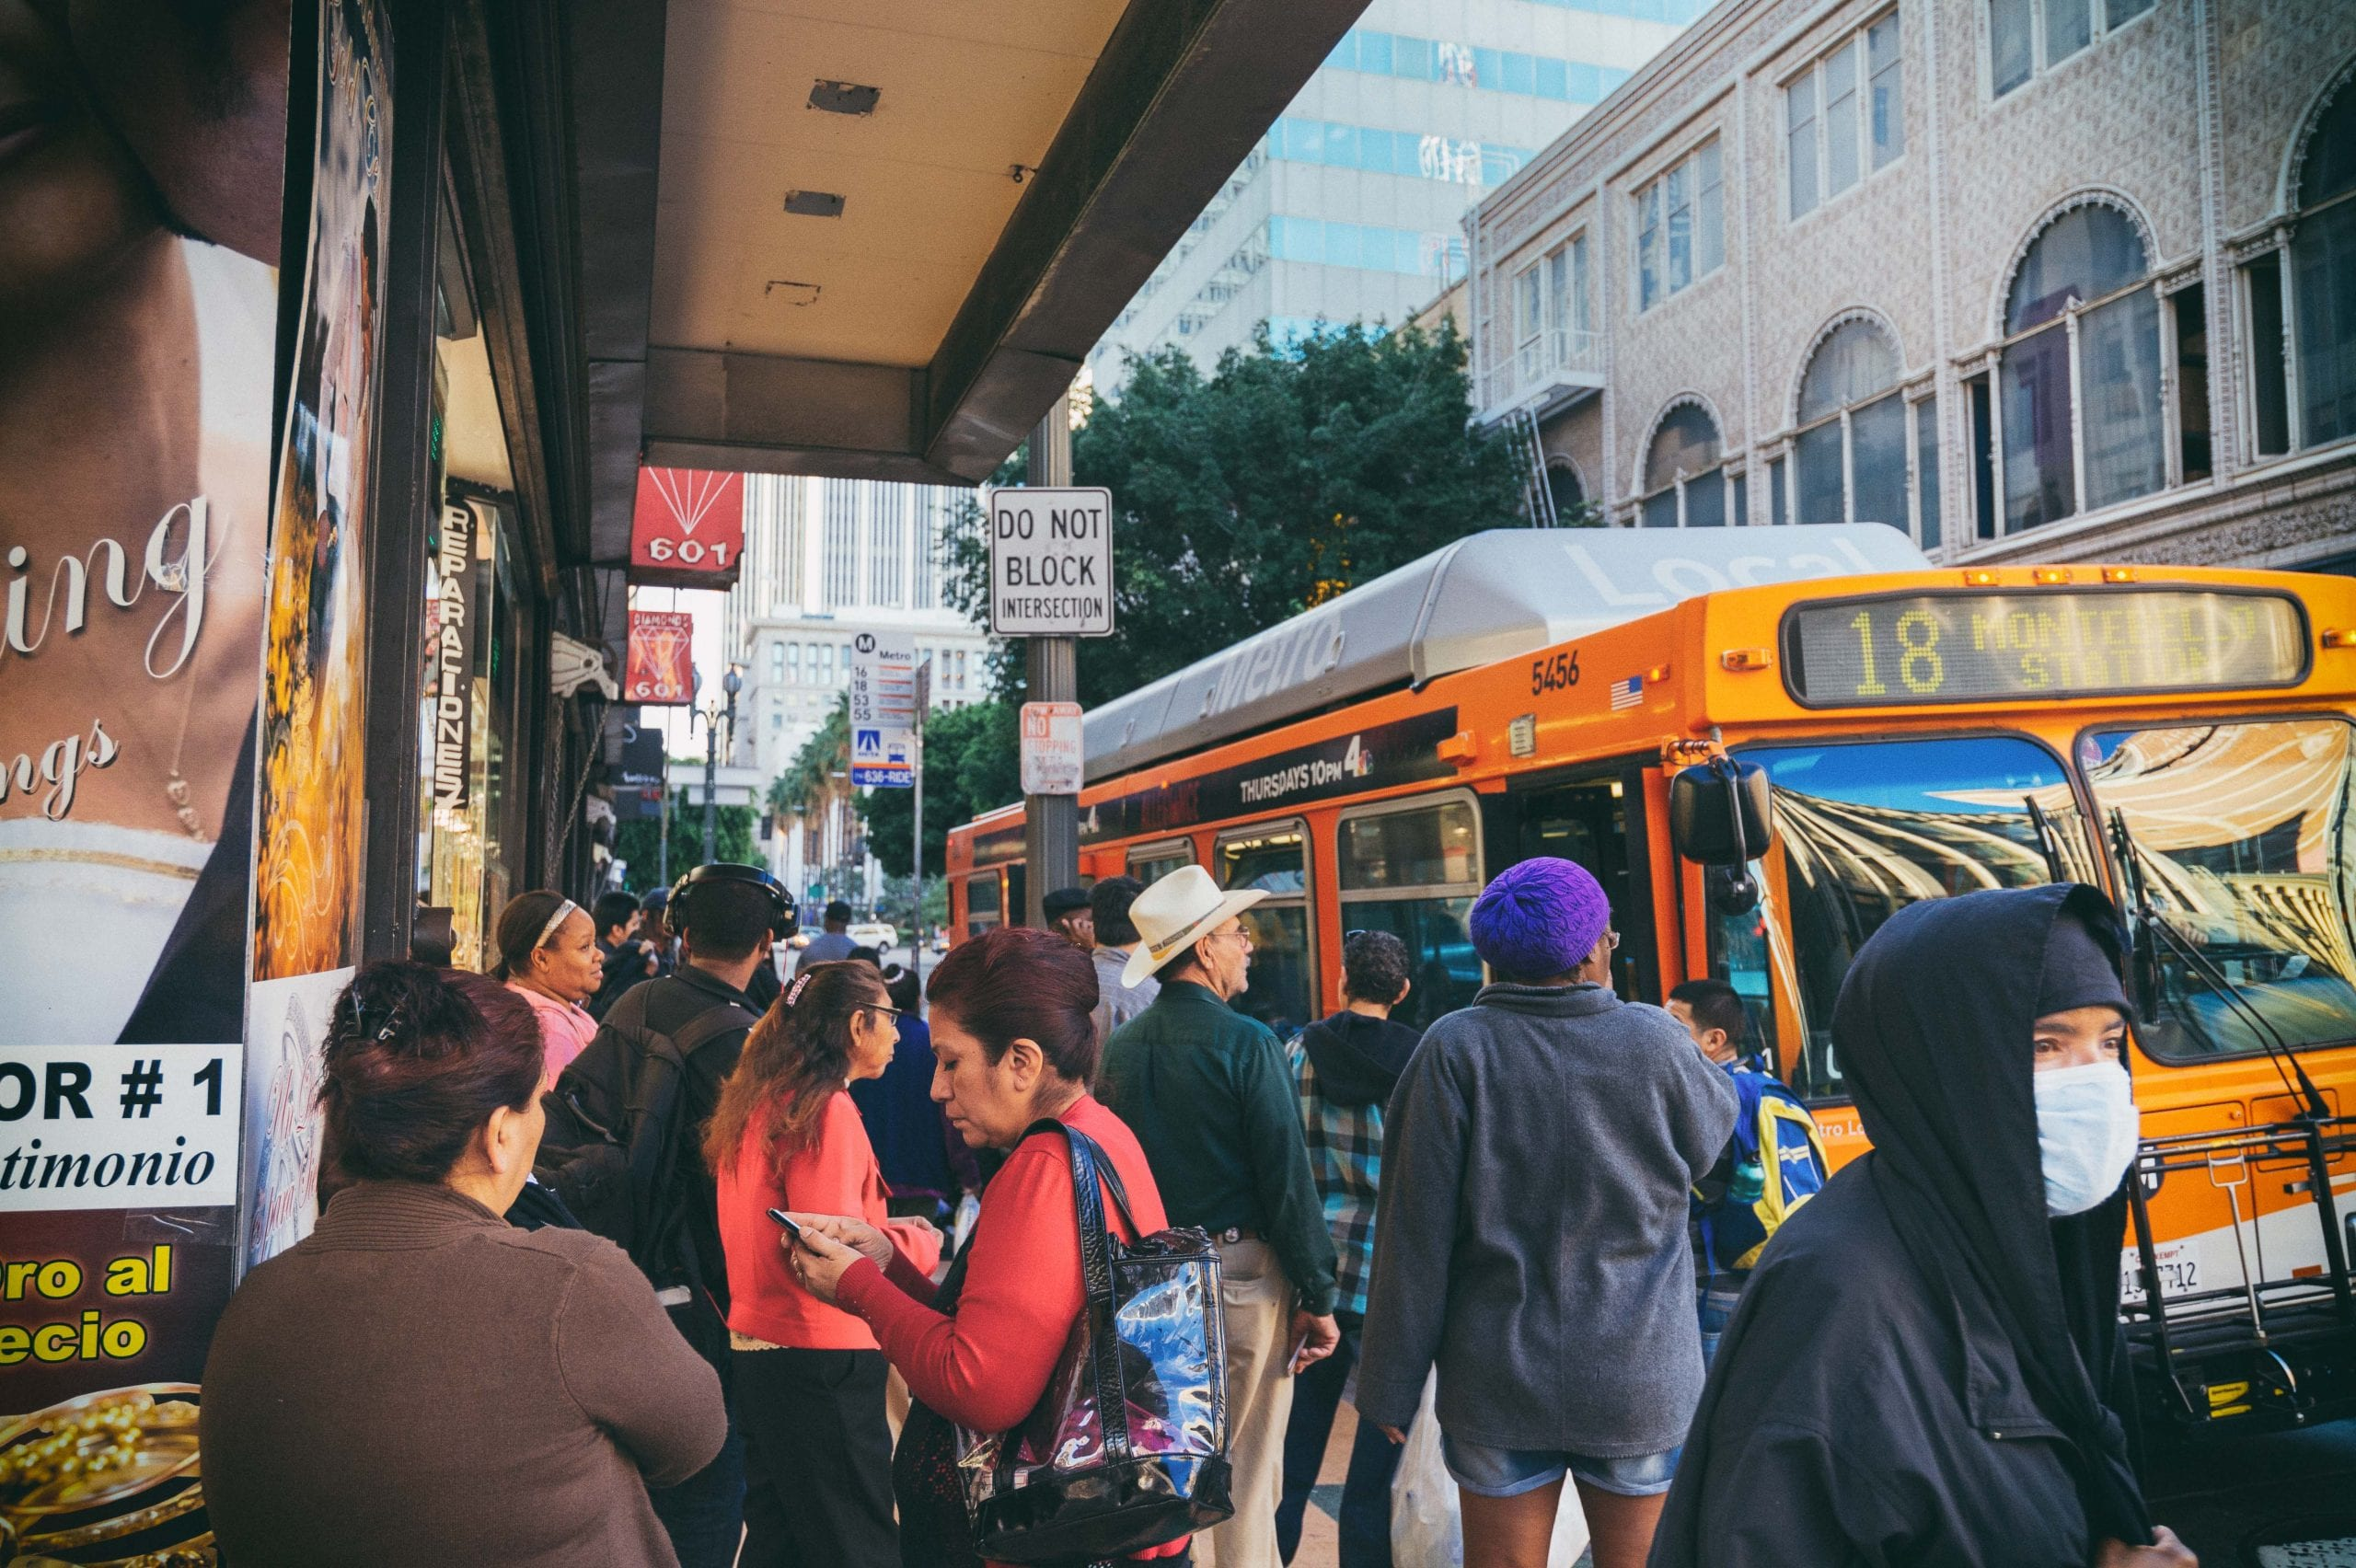 ART OF TRANSIT: The Metro Bus stop at Broadway and 6th in DTLA on Friday. Kind of a cluttered image, but also a good view of the cross-section of riders. Photo by Steve Hymon/Metro.